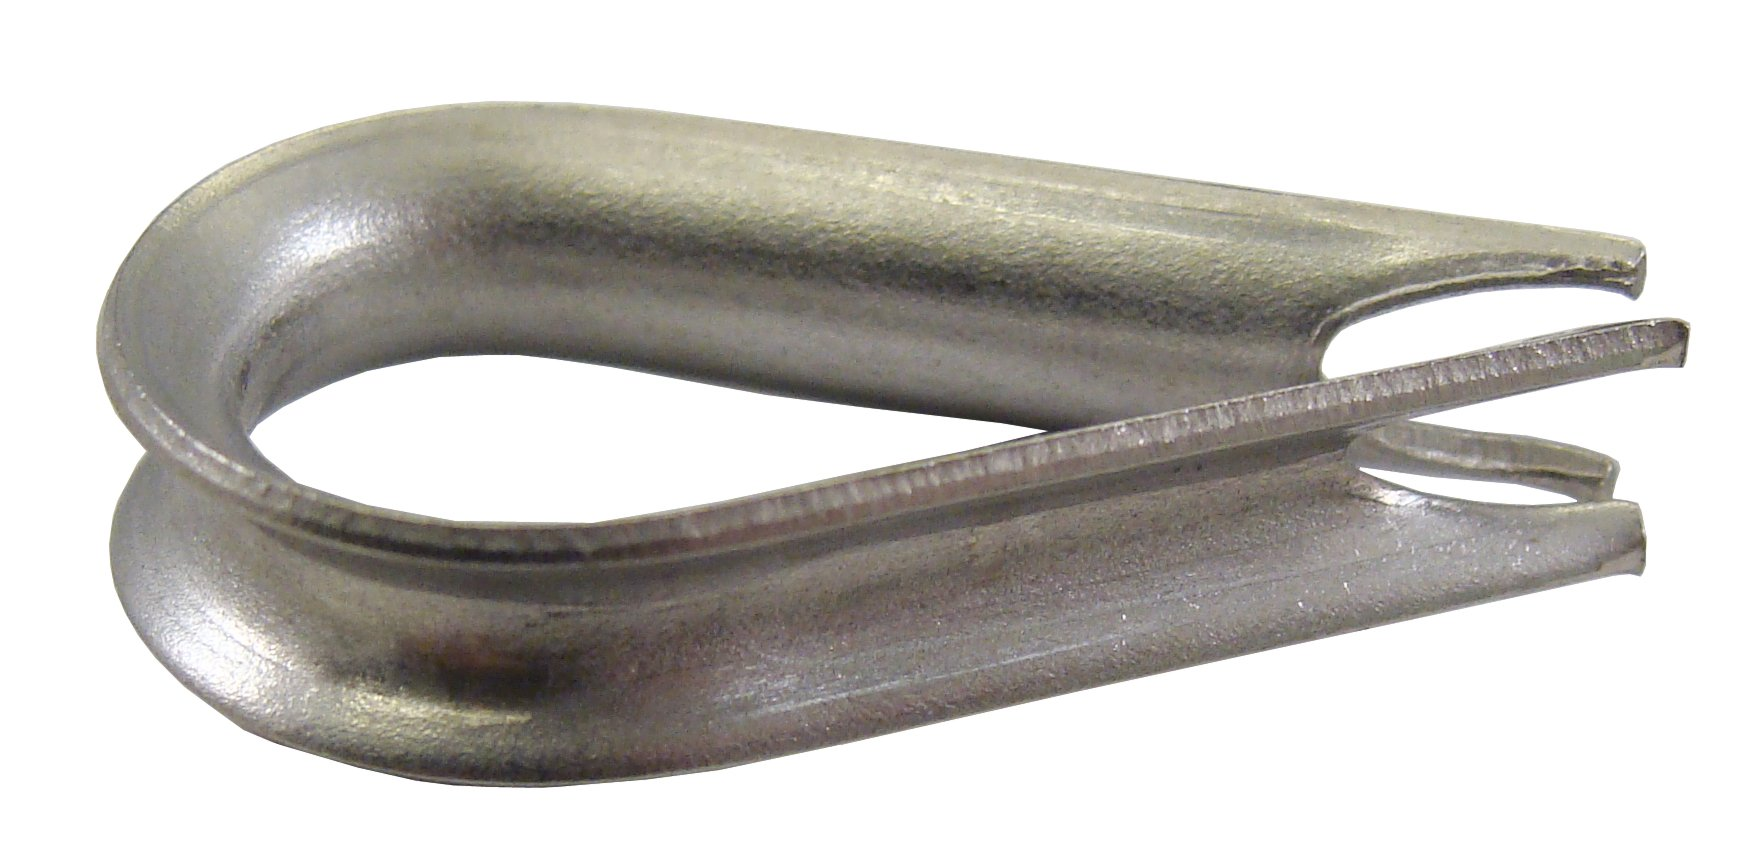 Loos Cableware AN100-C10 Stainless Steel Thimble